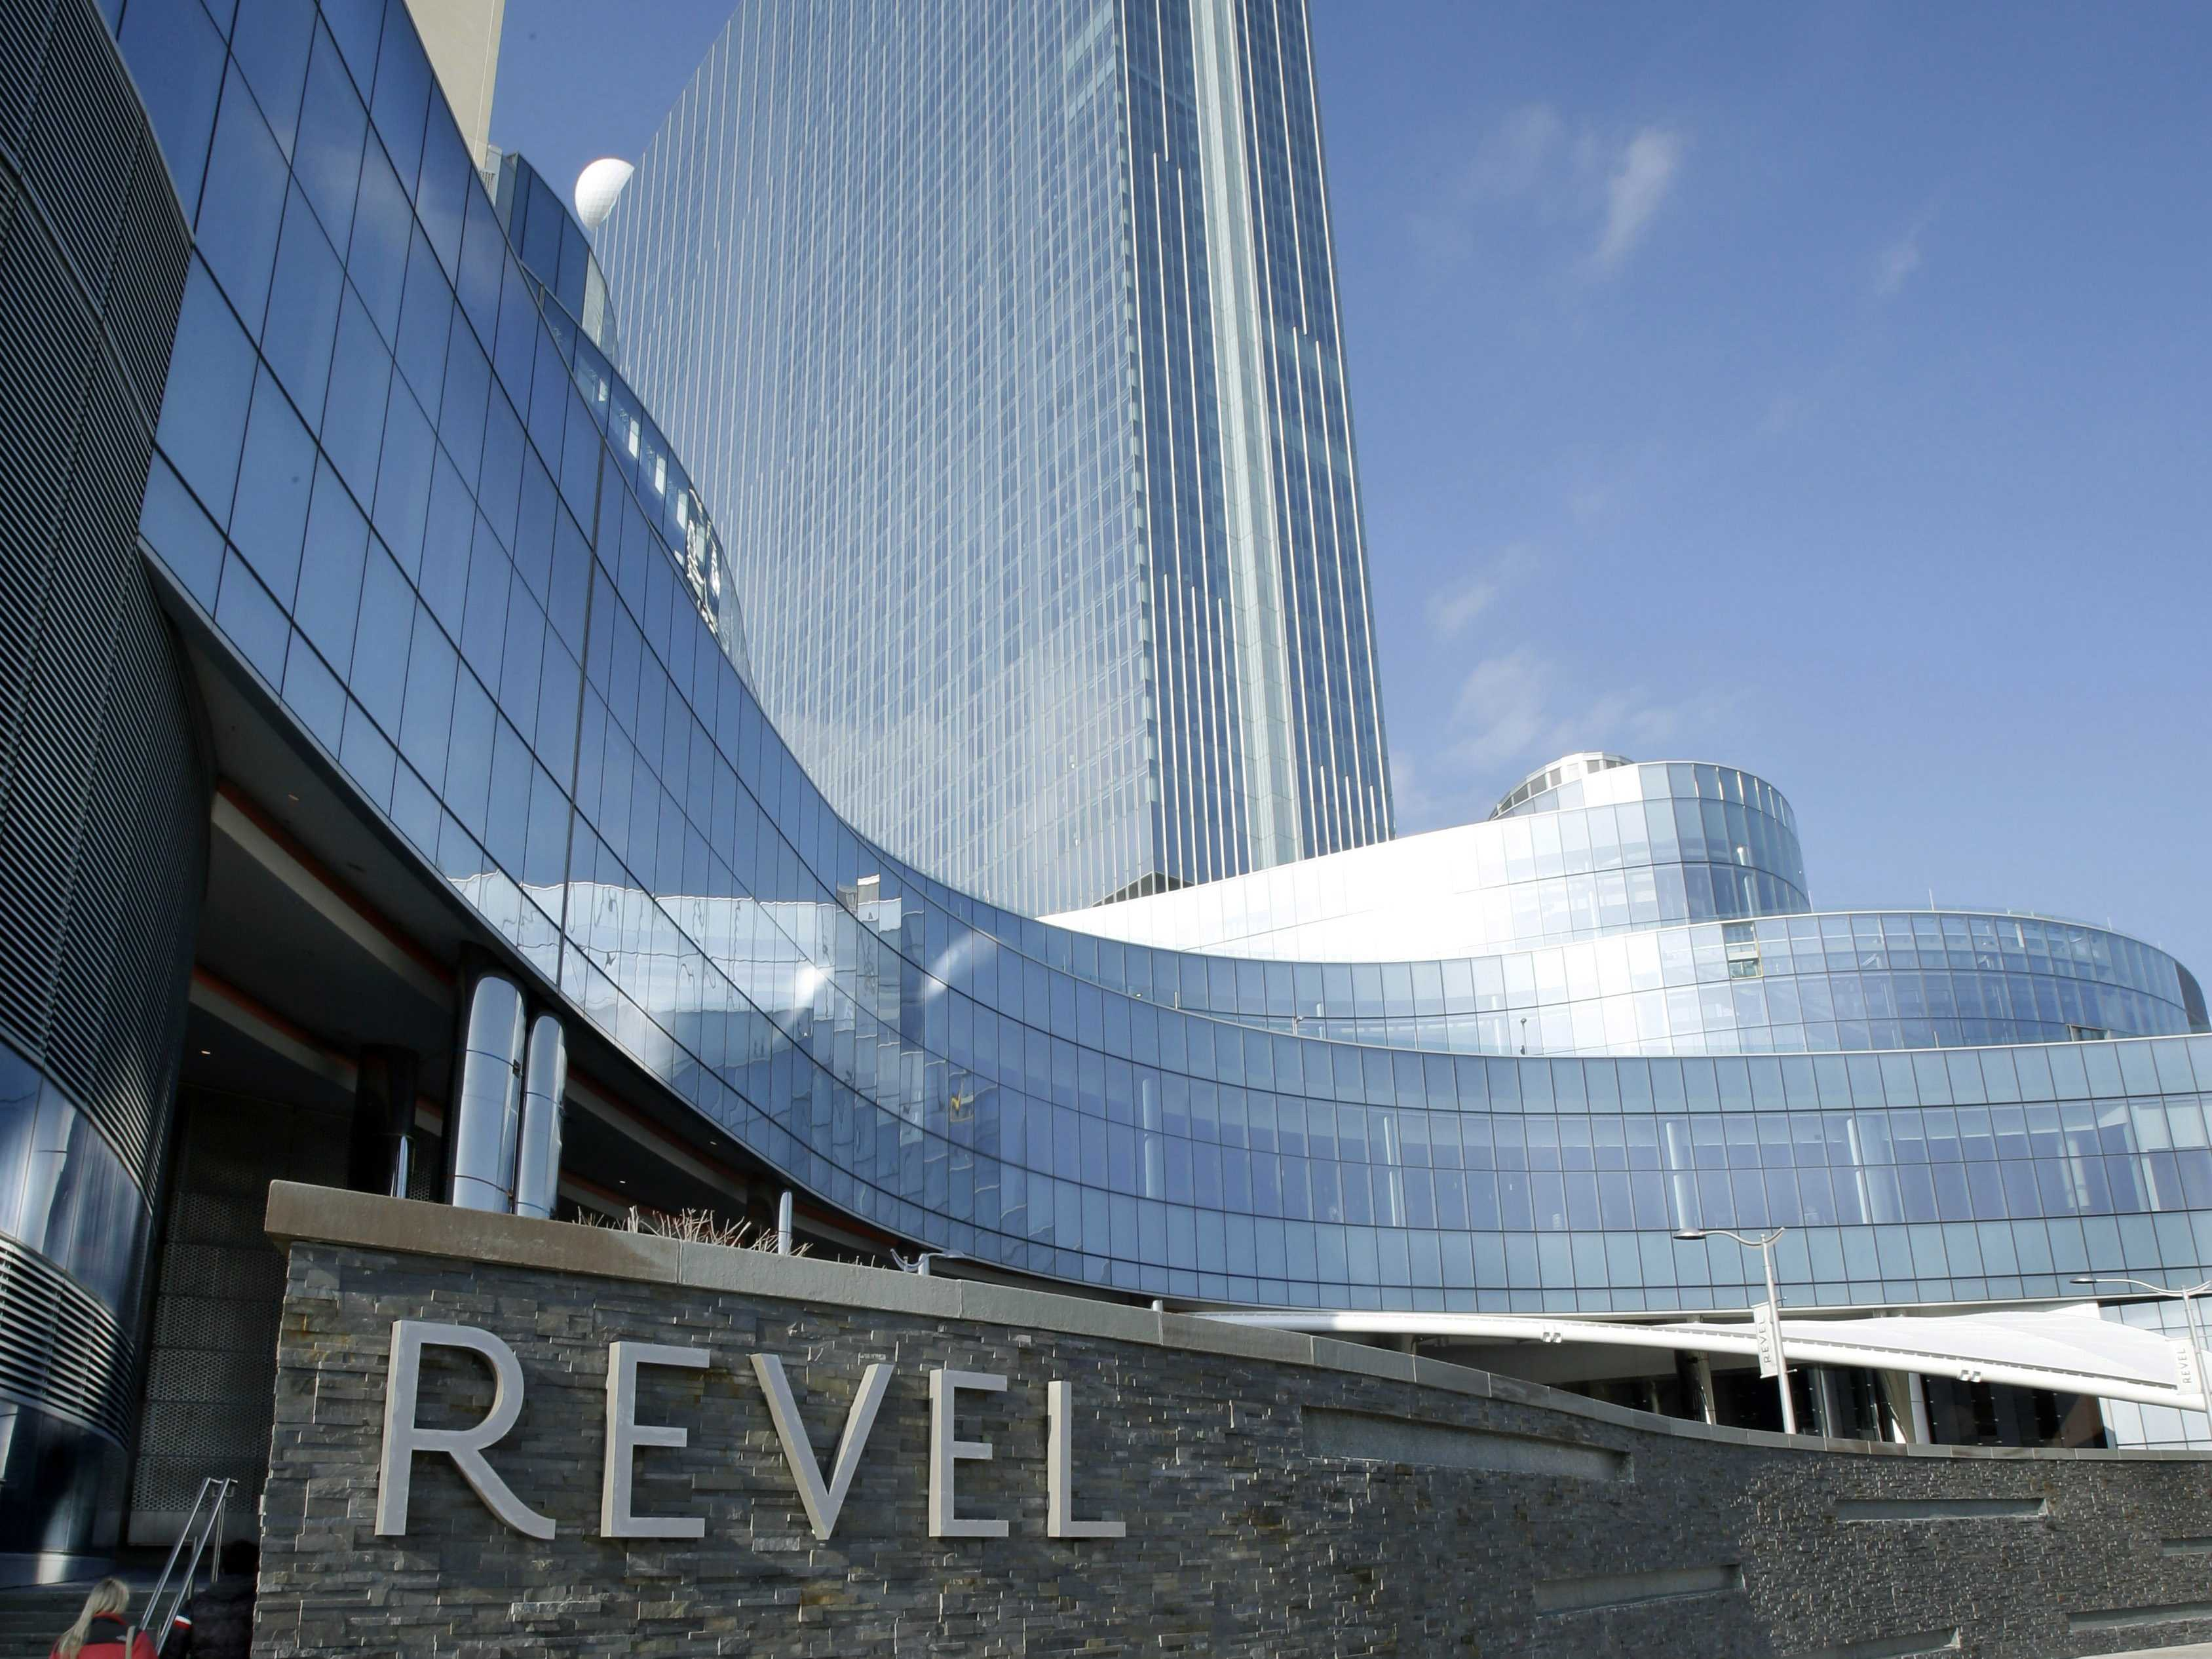 Signage on Revel Casino Stacked Stone Wall in Atlantic City, NJ as seen from the boardwalk